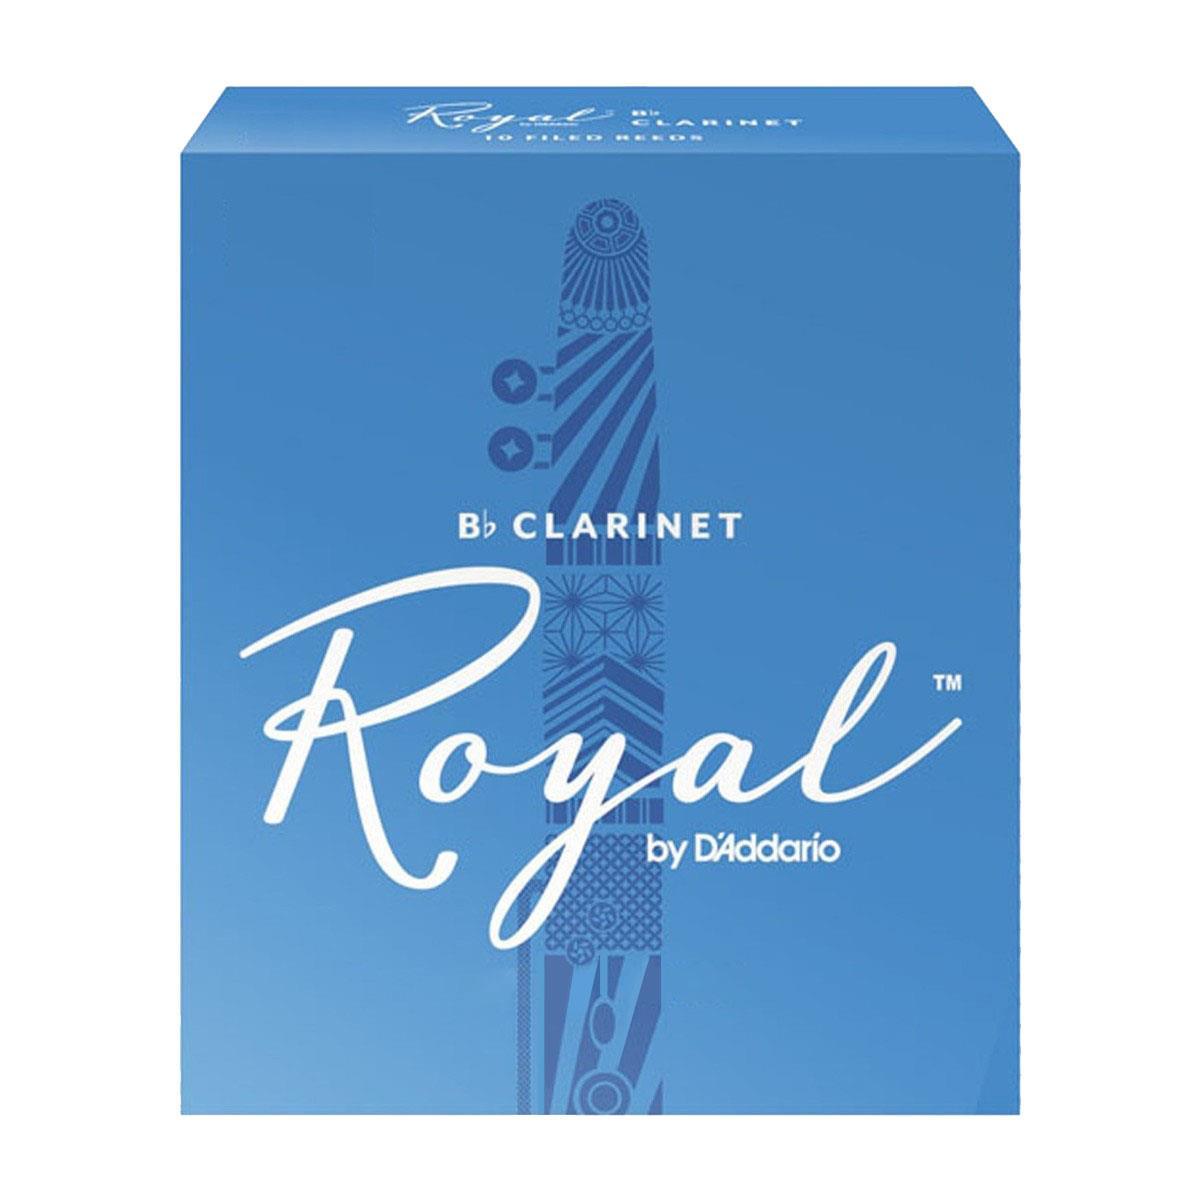 Image of D'Addario Woodwind Royal RCB1010 Bb Clarinet Reeds Strength 1 10-pack 0046716533210